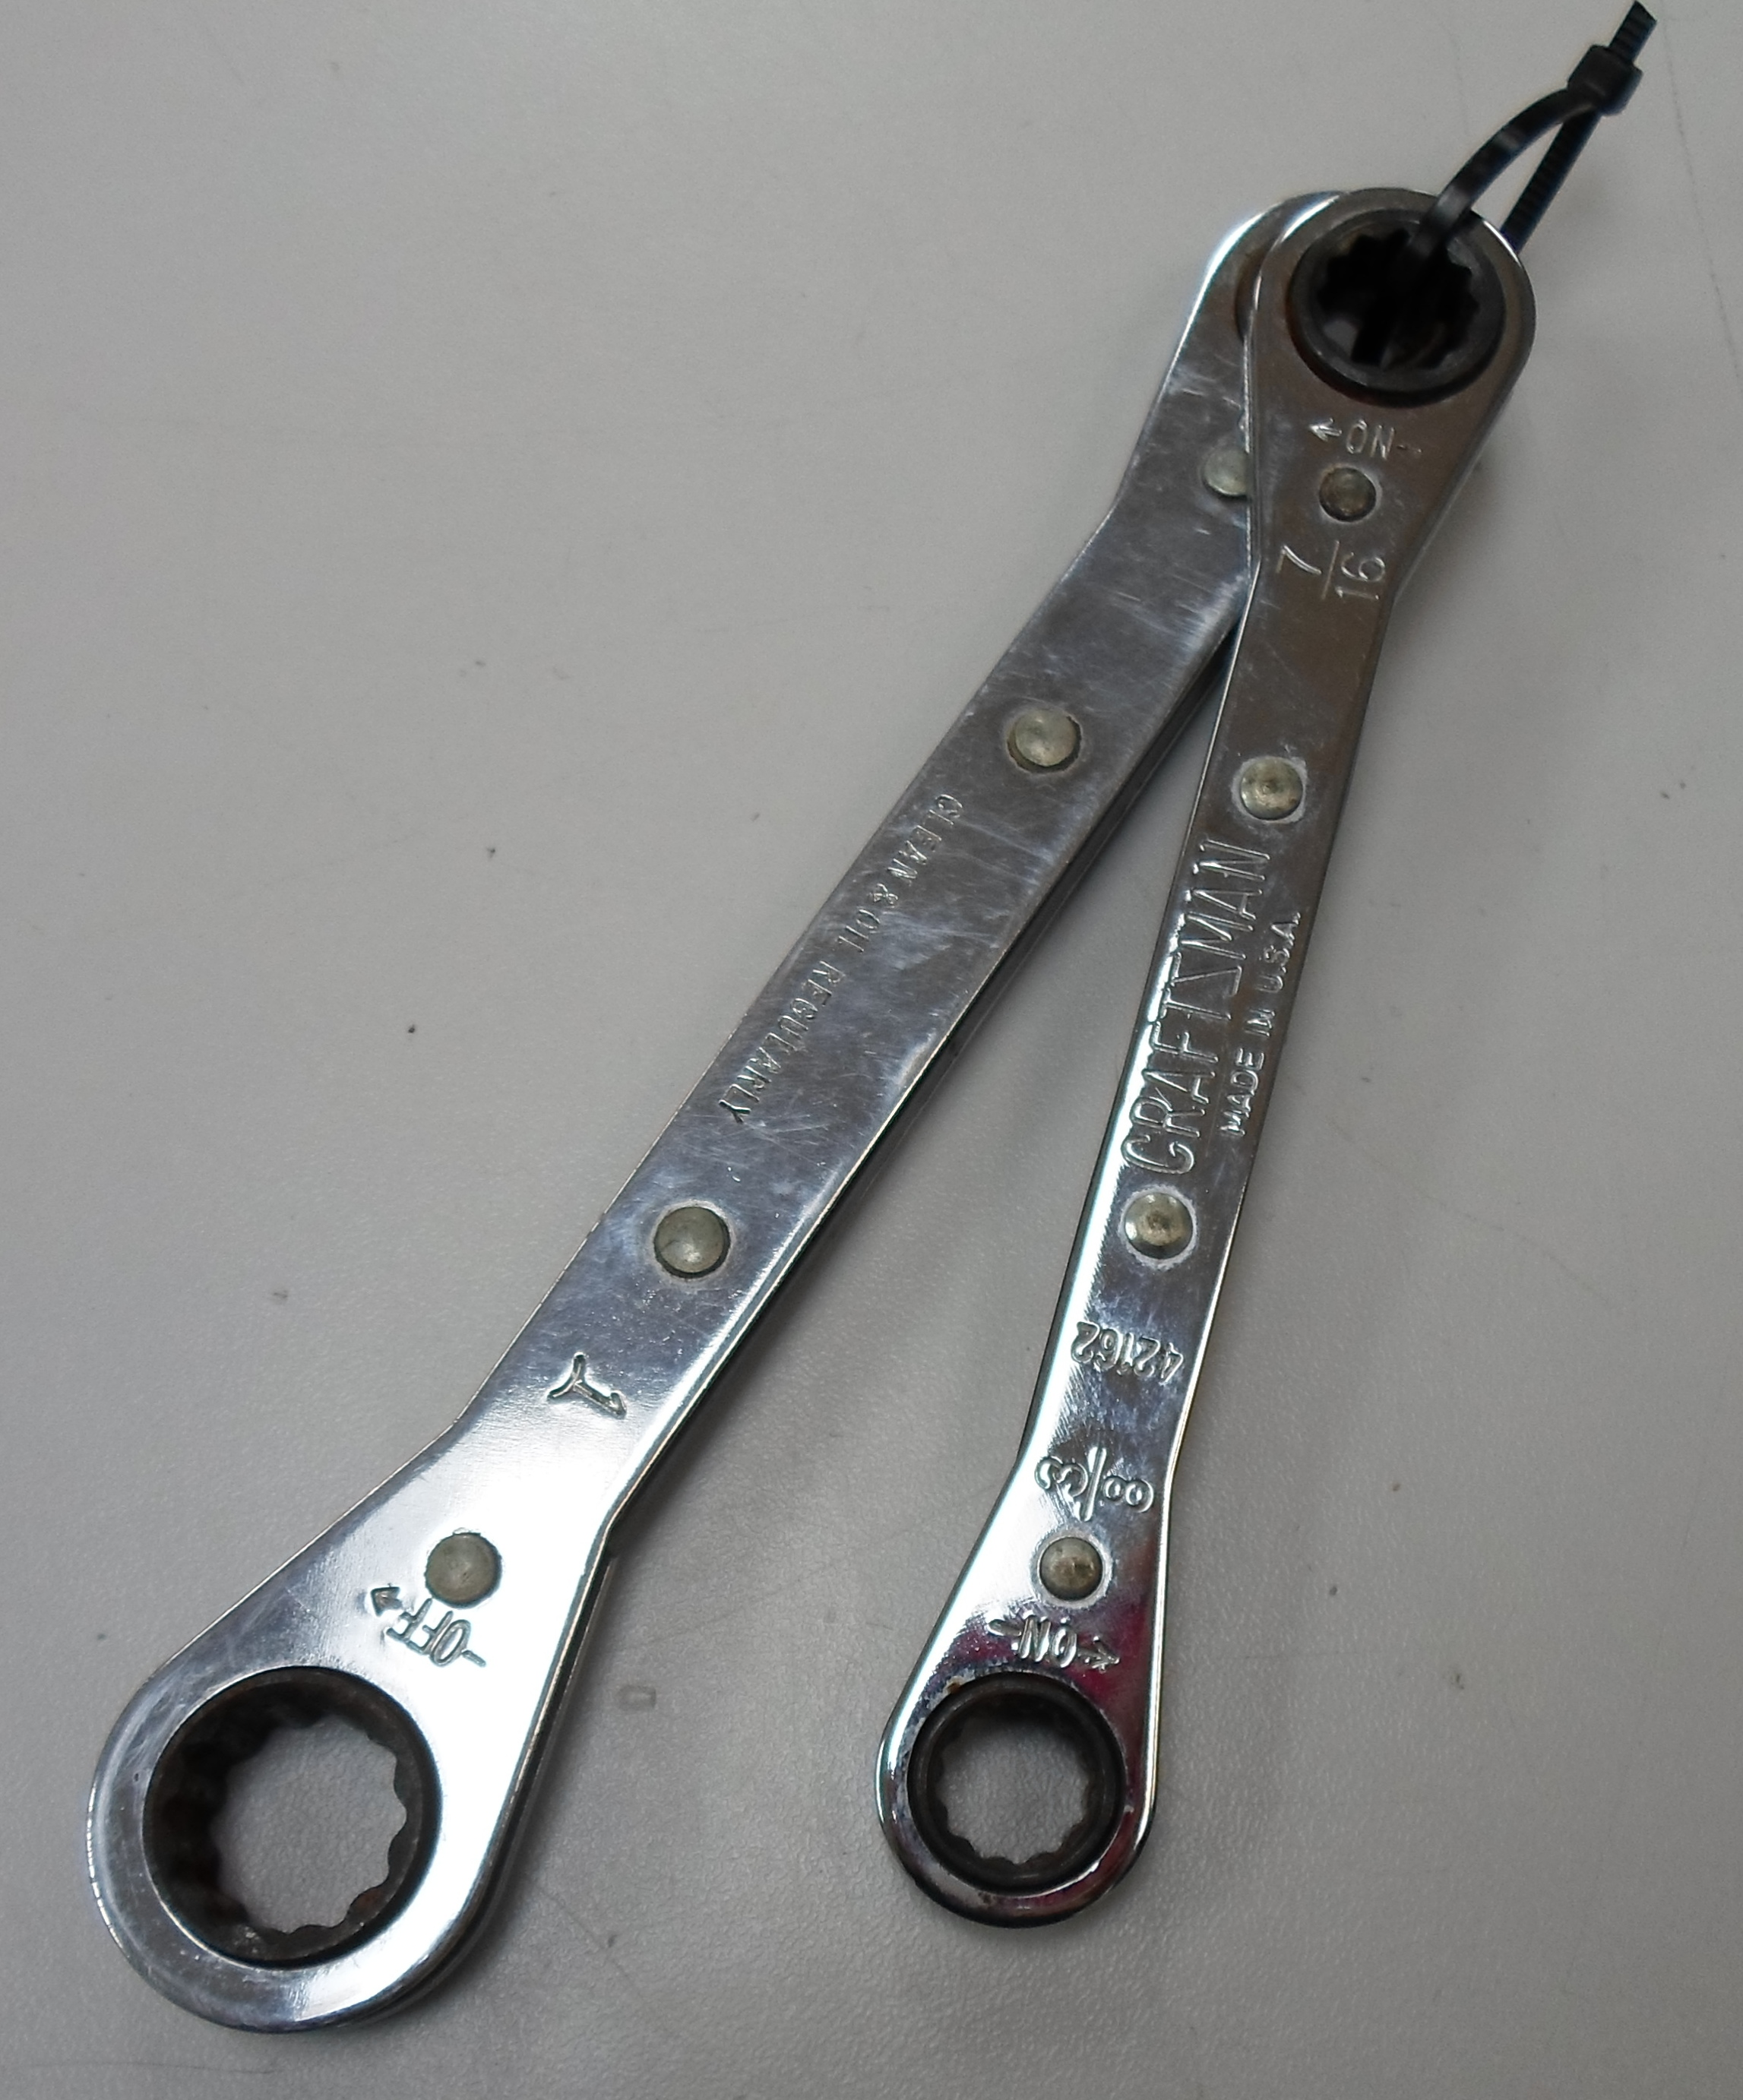 CRAFTSMAN - RATCHETING WRENCHES - 2 SAE MEASUREMENT